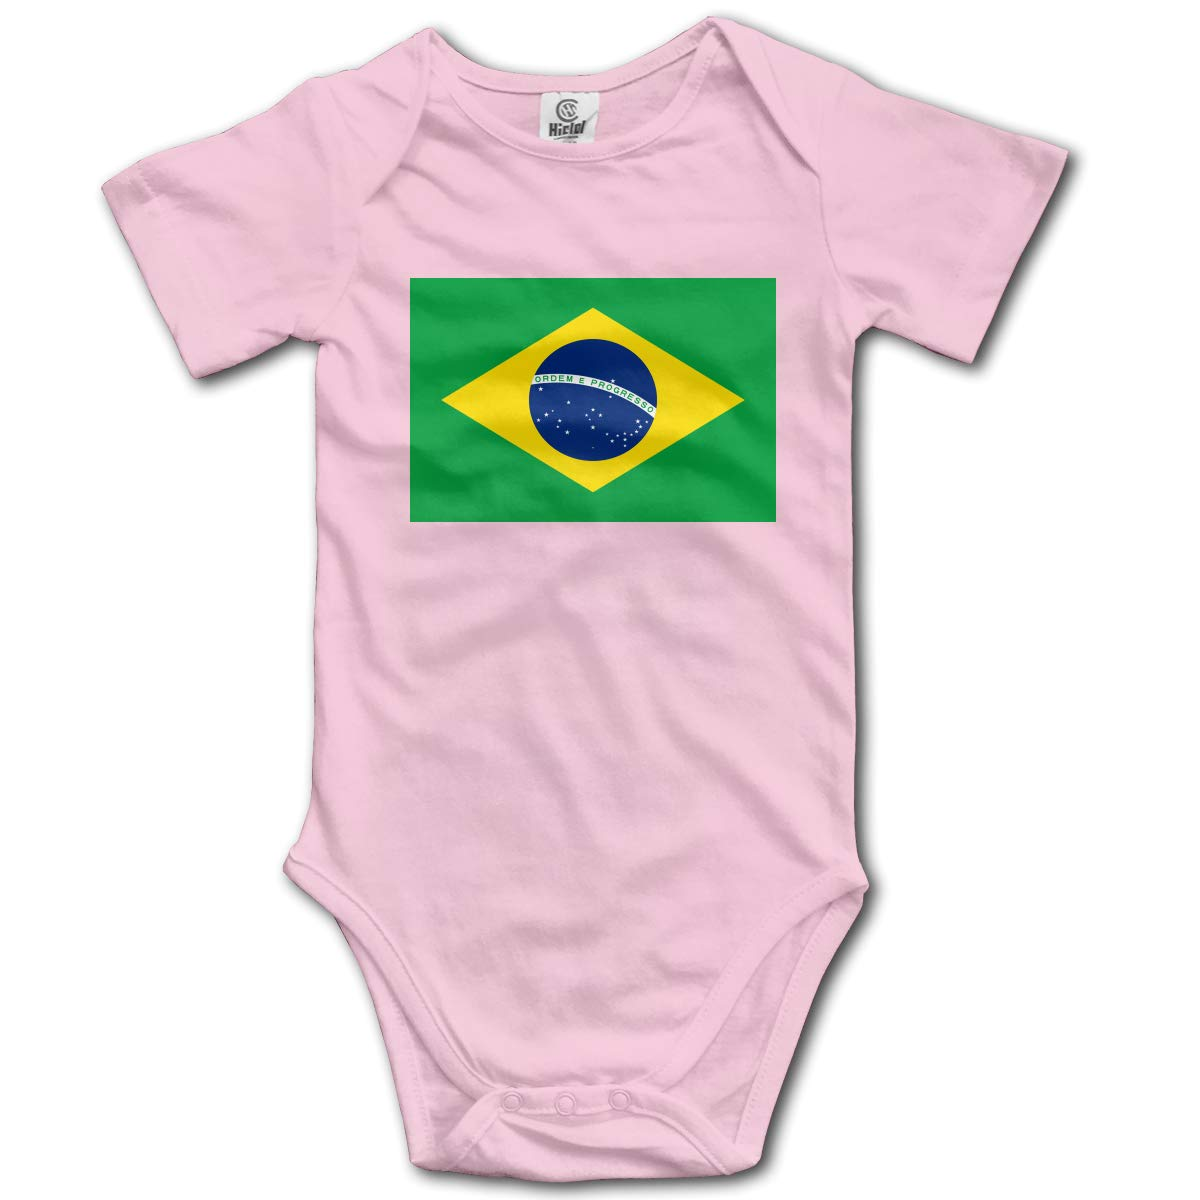 CUTEDWARF Baby Short-Sleeve Onesies Flag of Brazil Bodysuit Baby Outfits